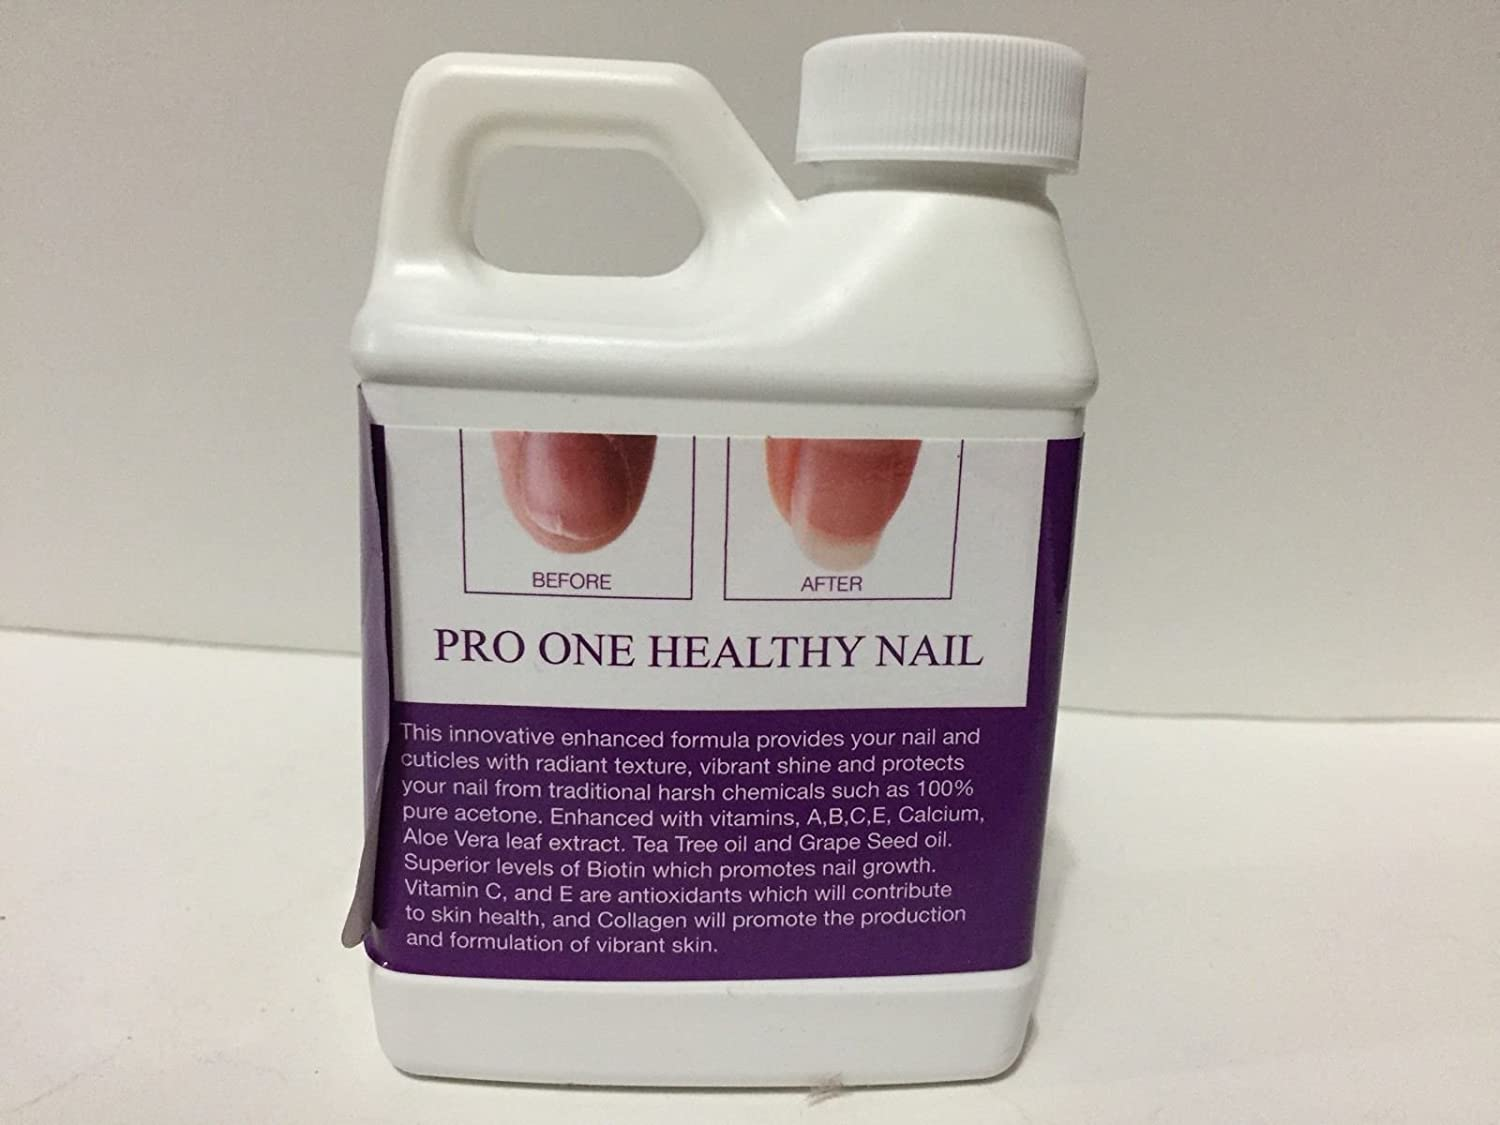 Amazon.com : Pro One Healthy Nail Nail Lacquer Gel Polish Remover (Soak Off) : Beauty